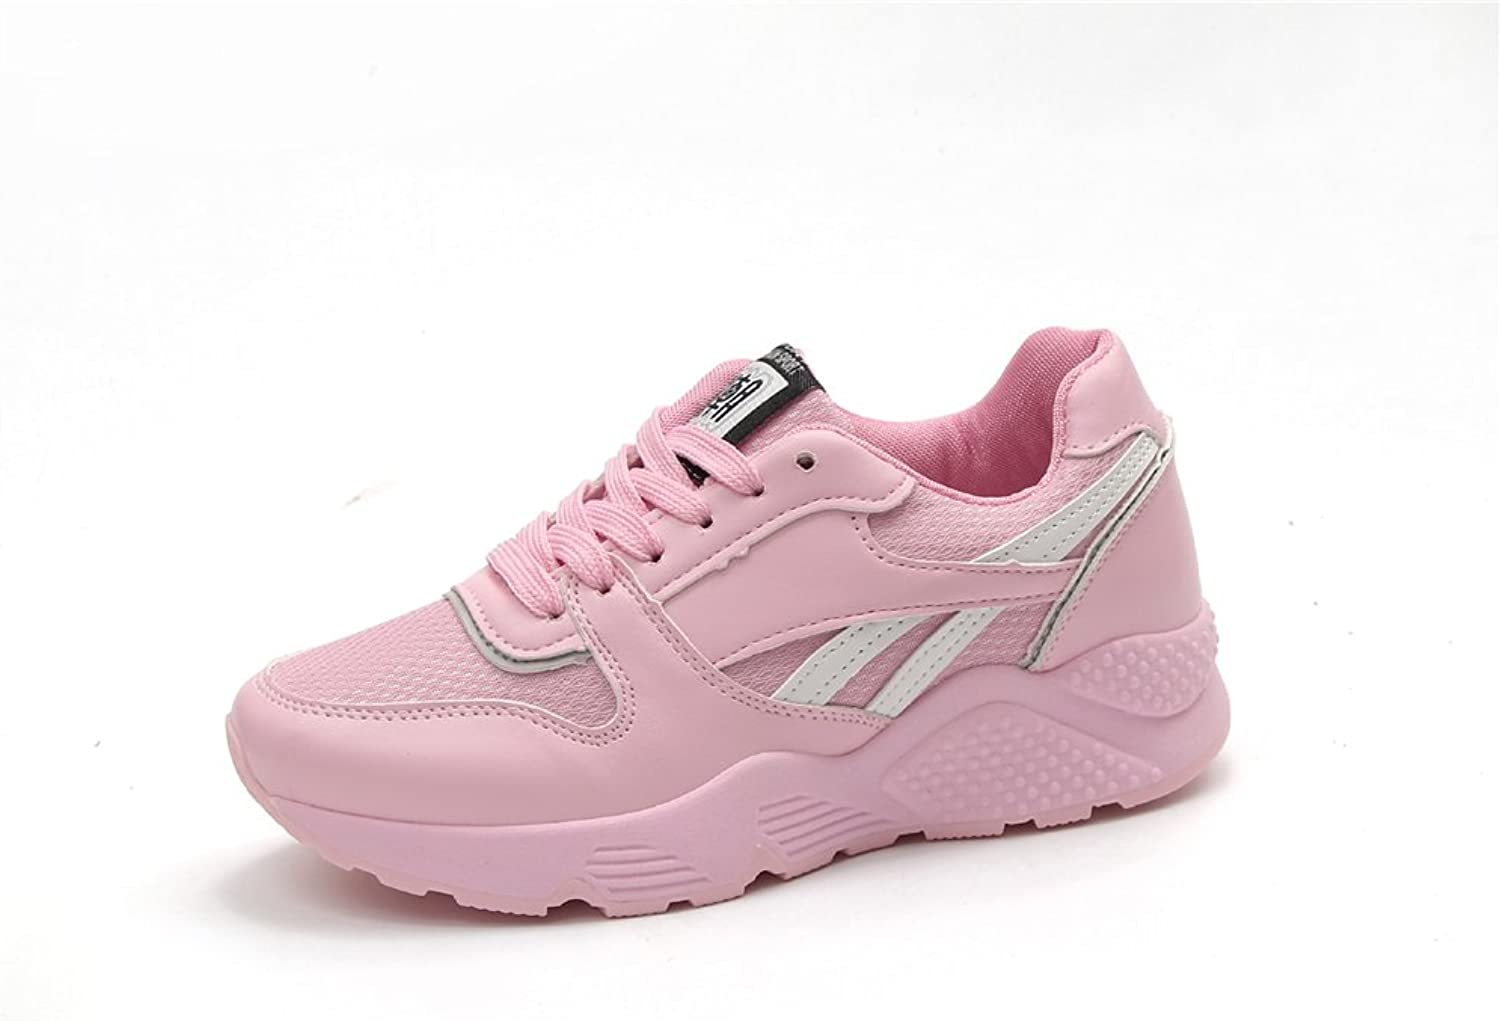 Super frist Women's Athletic shoes Casual Fashion Mesh Walking Sneakers Breathable Running shoes